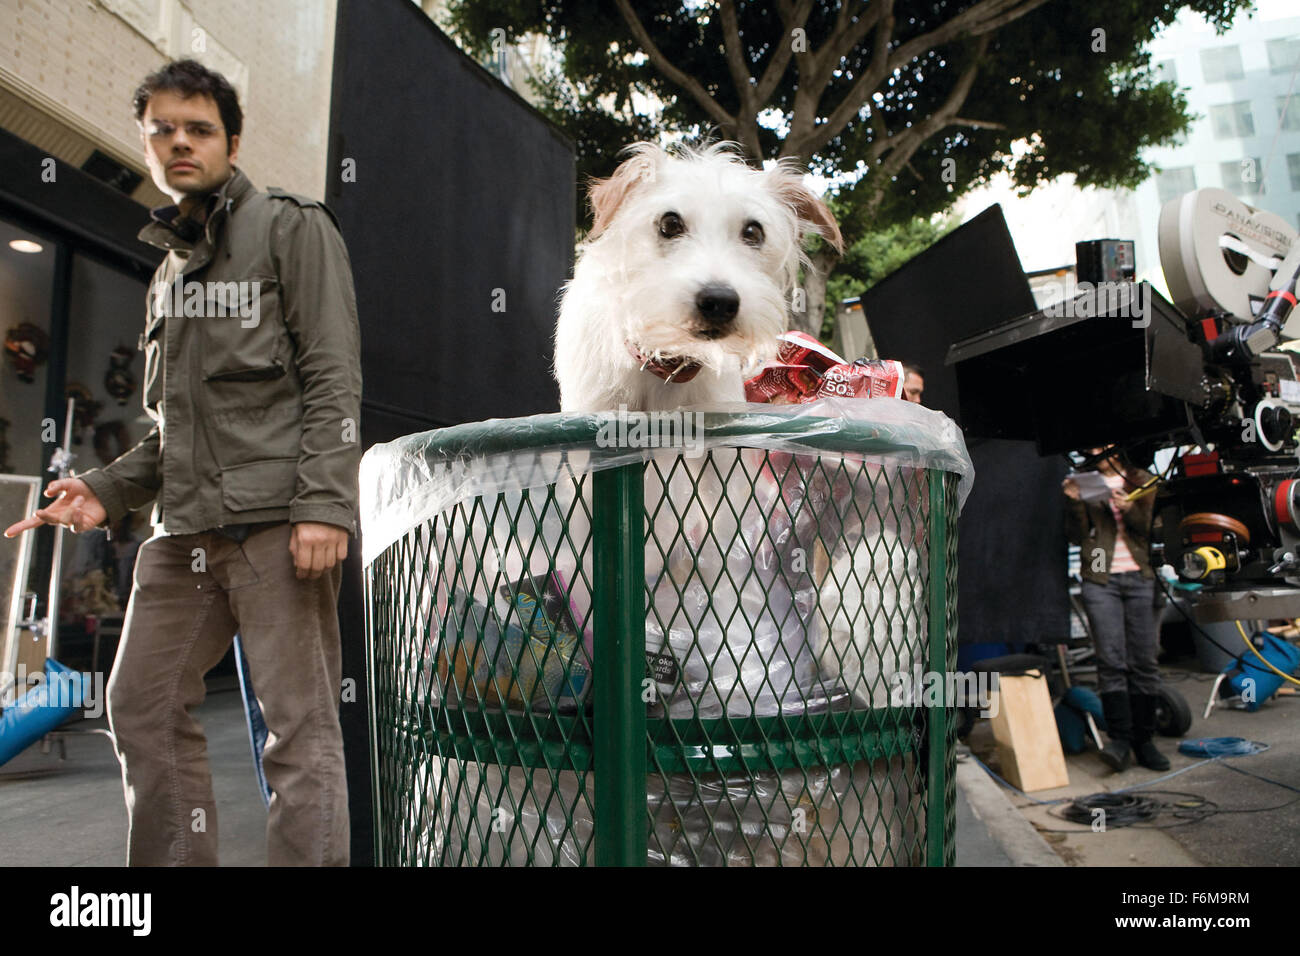 RELEASE DATE: 16 January 2009  MOVIE TITLE: Hotel for Dogs